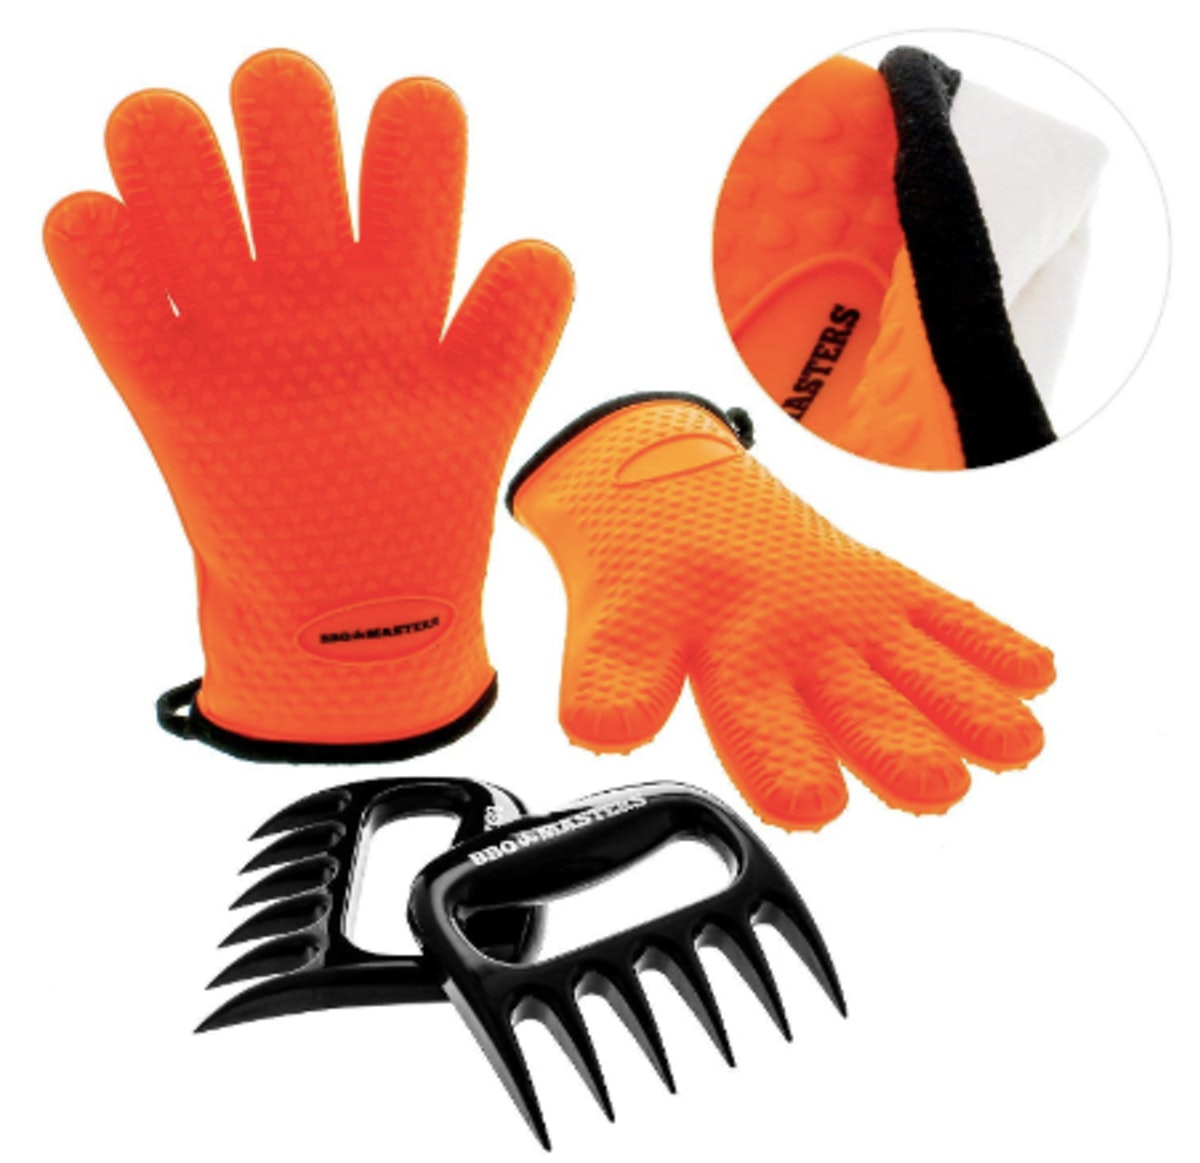 TCP Global BBQ Master Heat Resistant Silicone Cooking Gloves